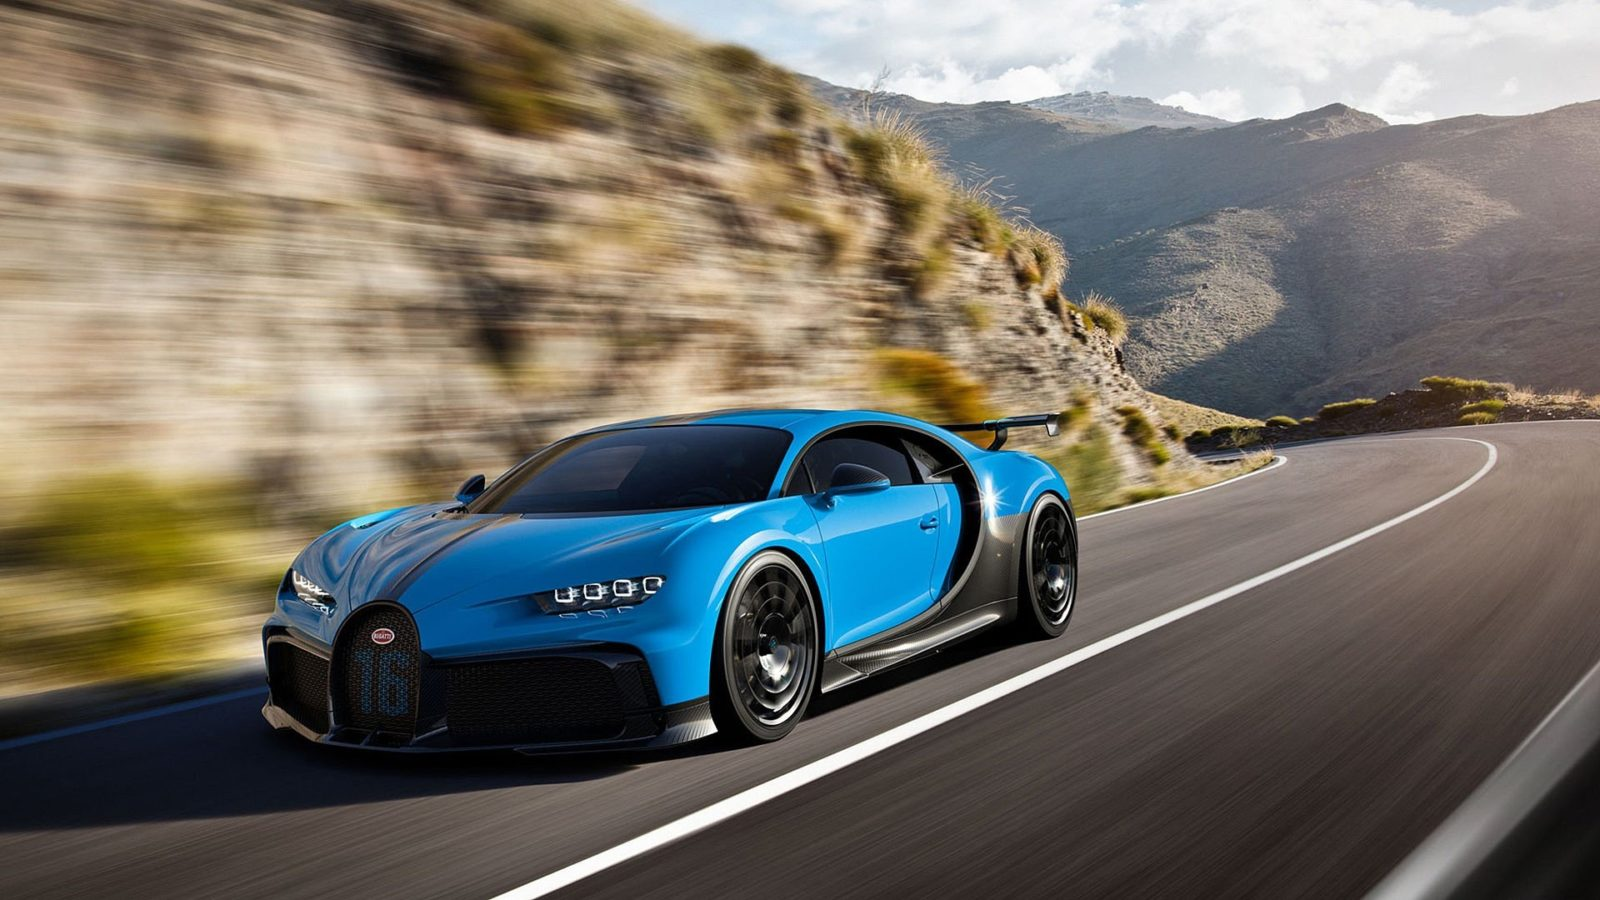 Bugatti's sleek new Chiron Pur Sport is made for curving country roads